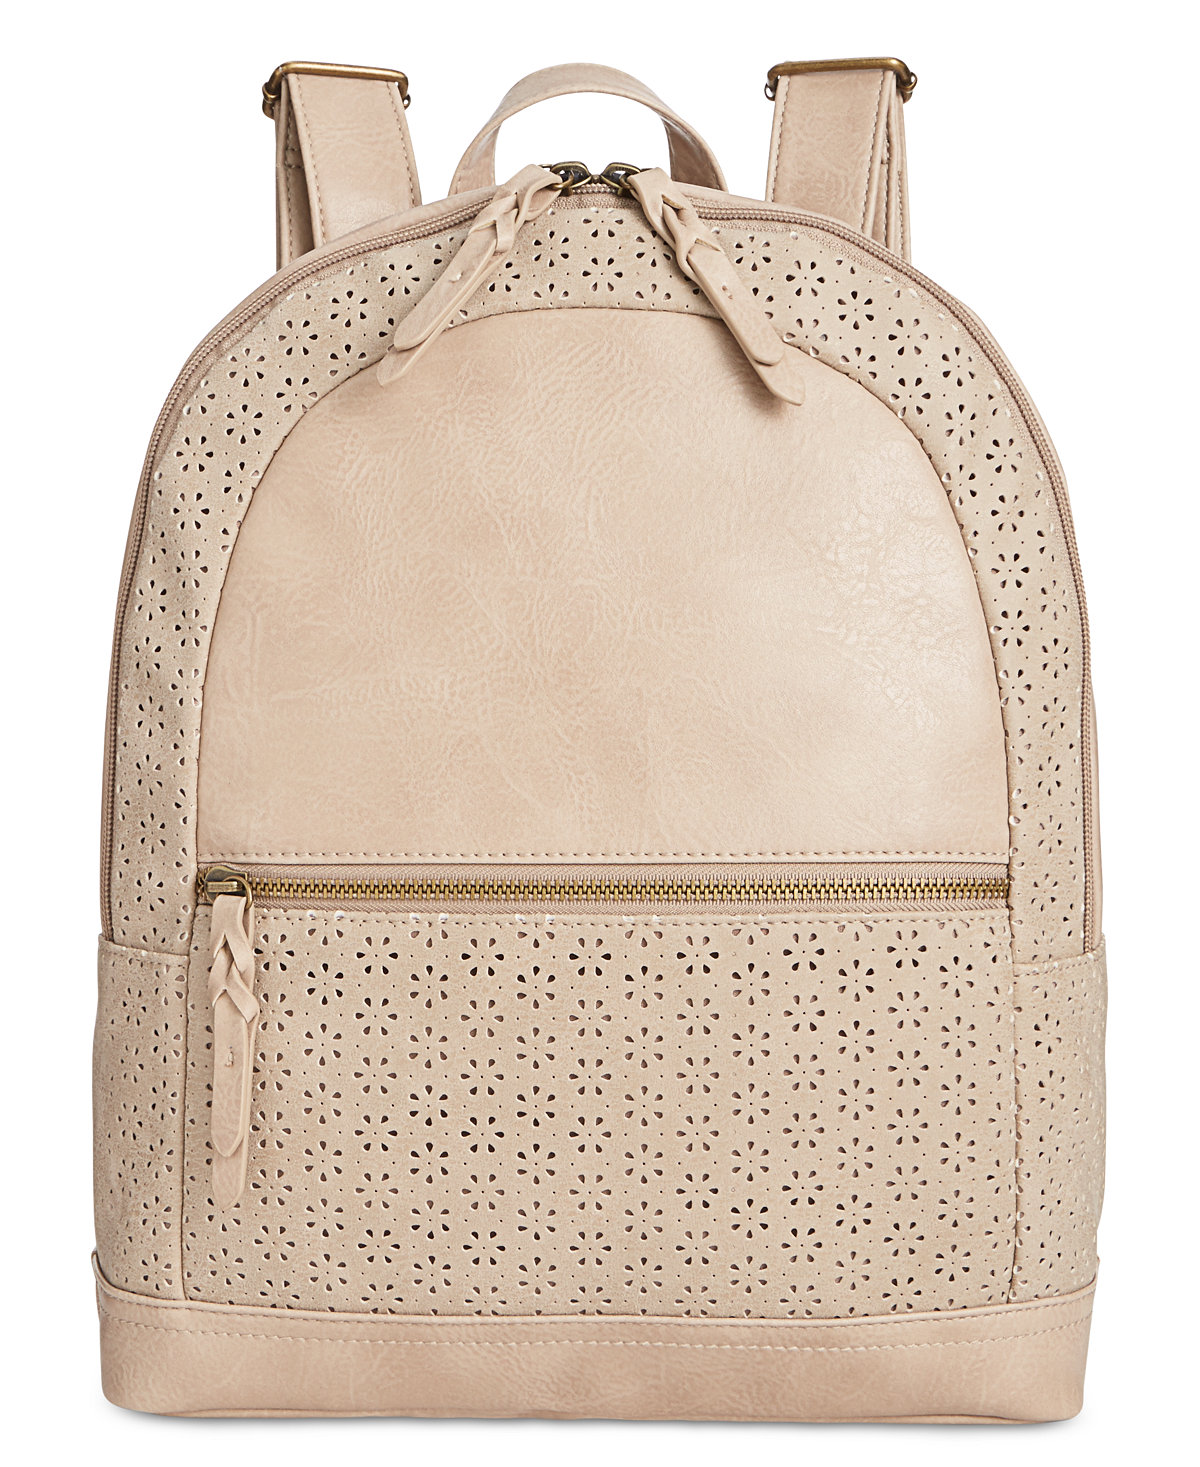 Style & Co Airyell Daisy Perforated Medium Backpack (Beige)